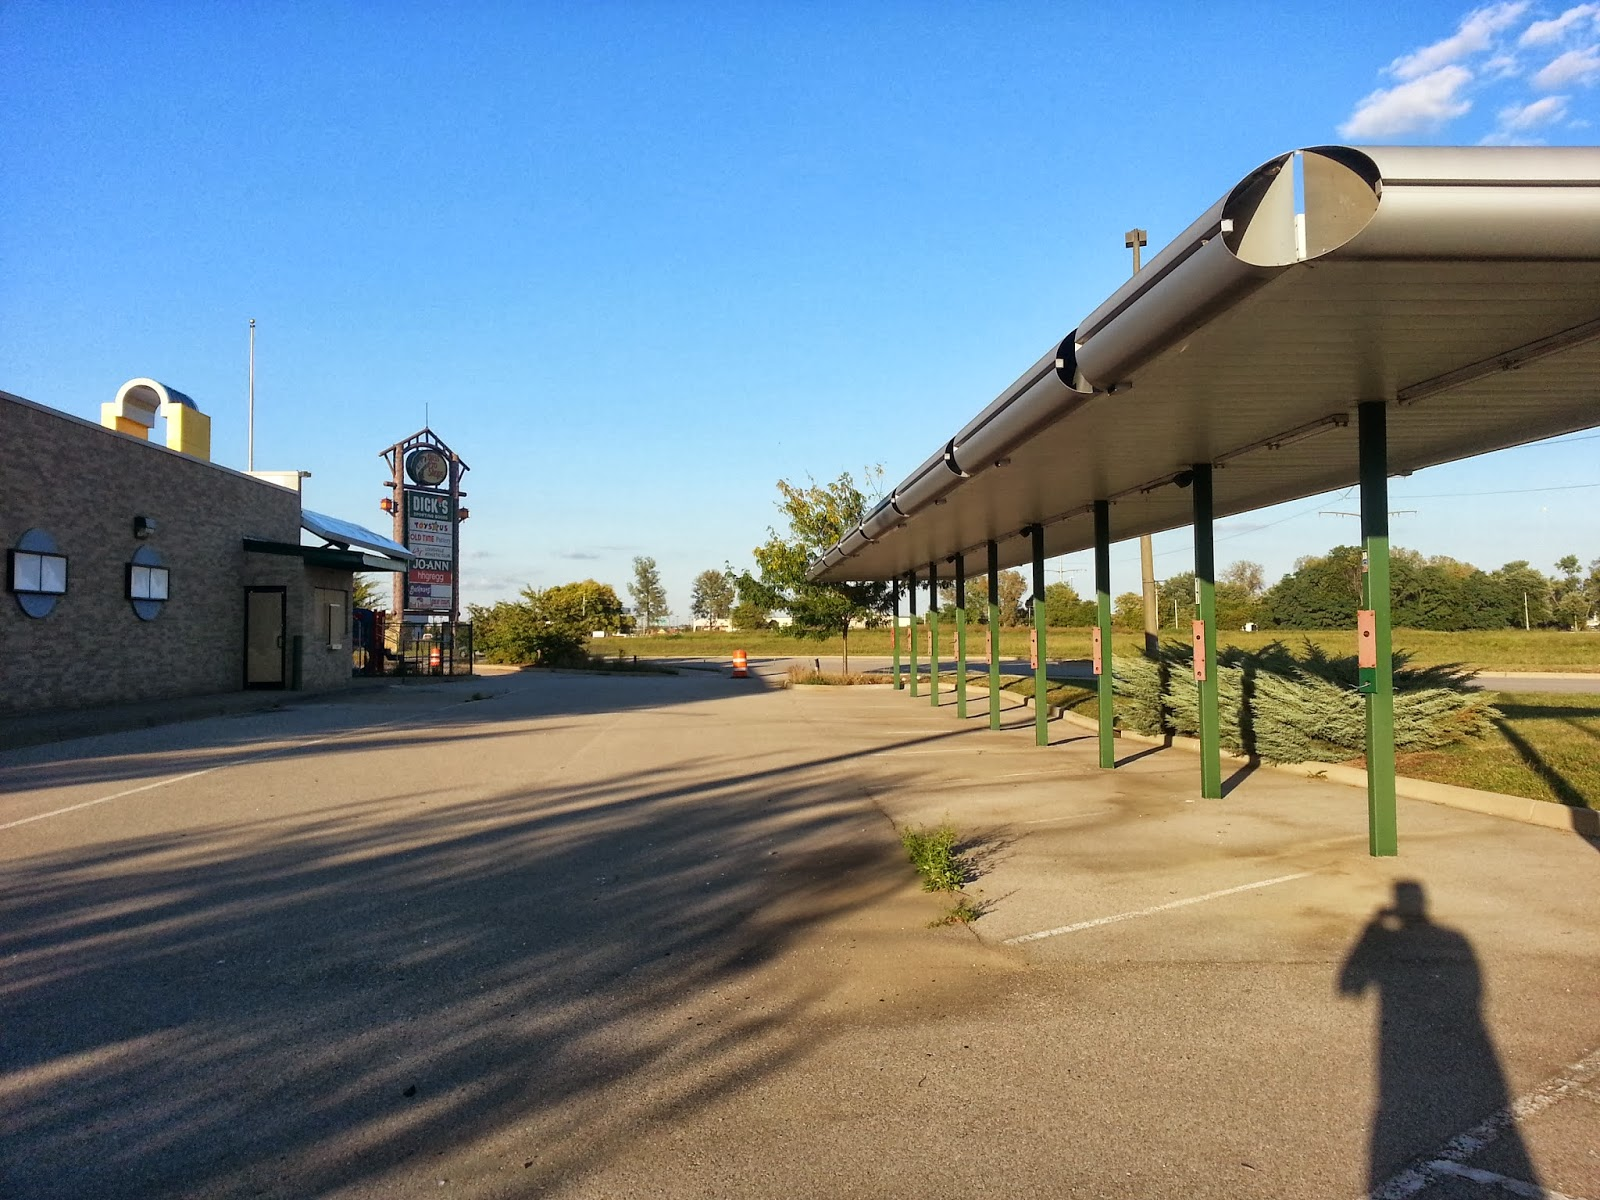 Eerie Indiana Abandoned Sonic Drive In Restaurant Clarksville